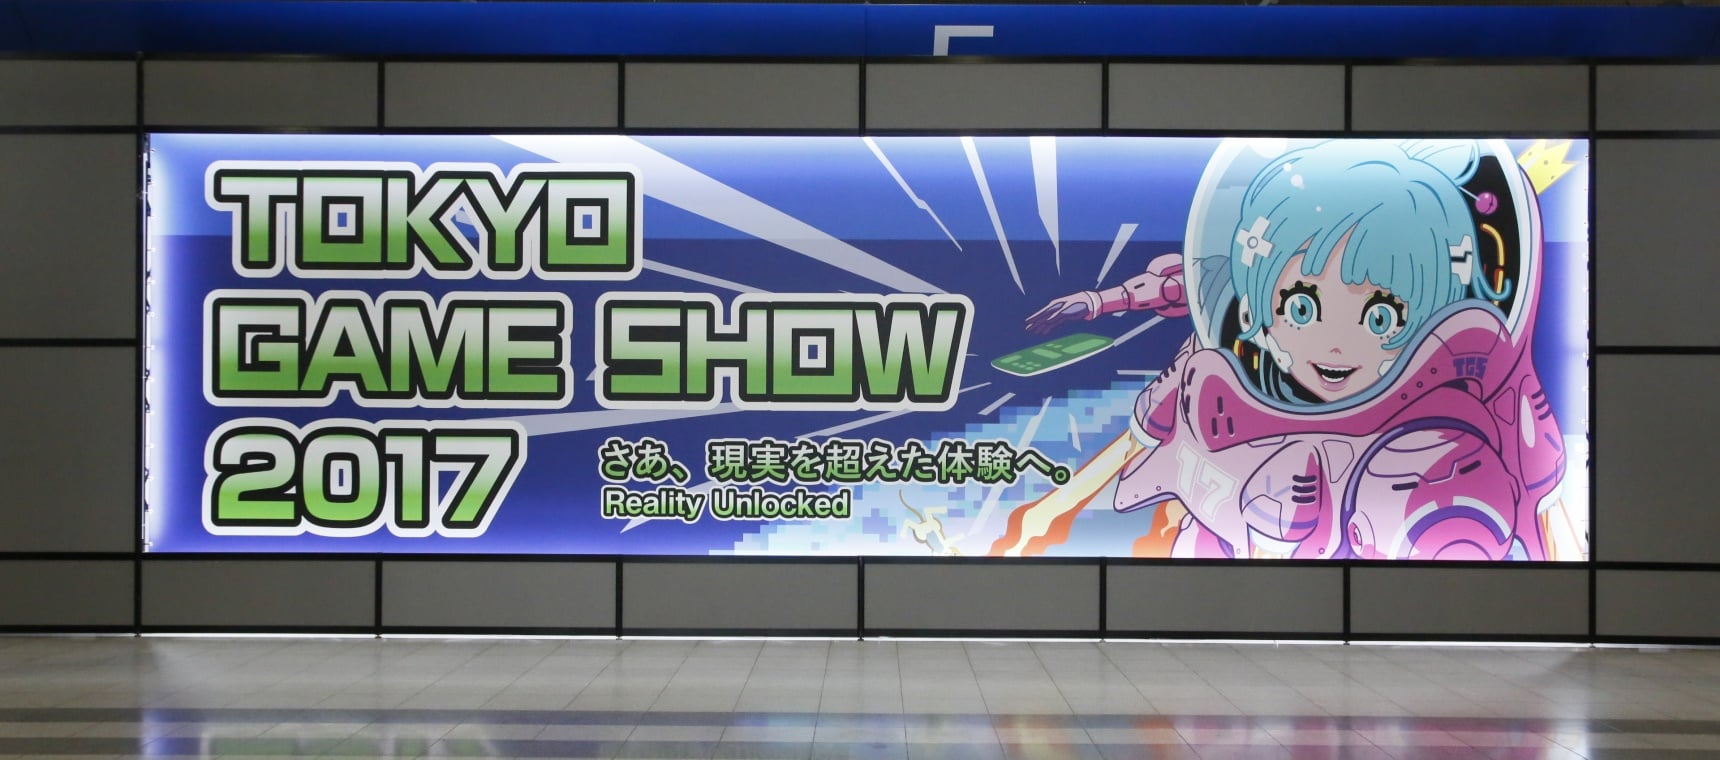 Checking Out Tokyo Game Show 2017